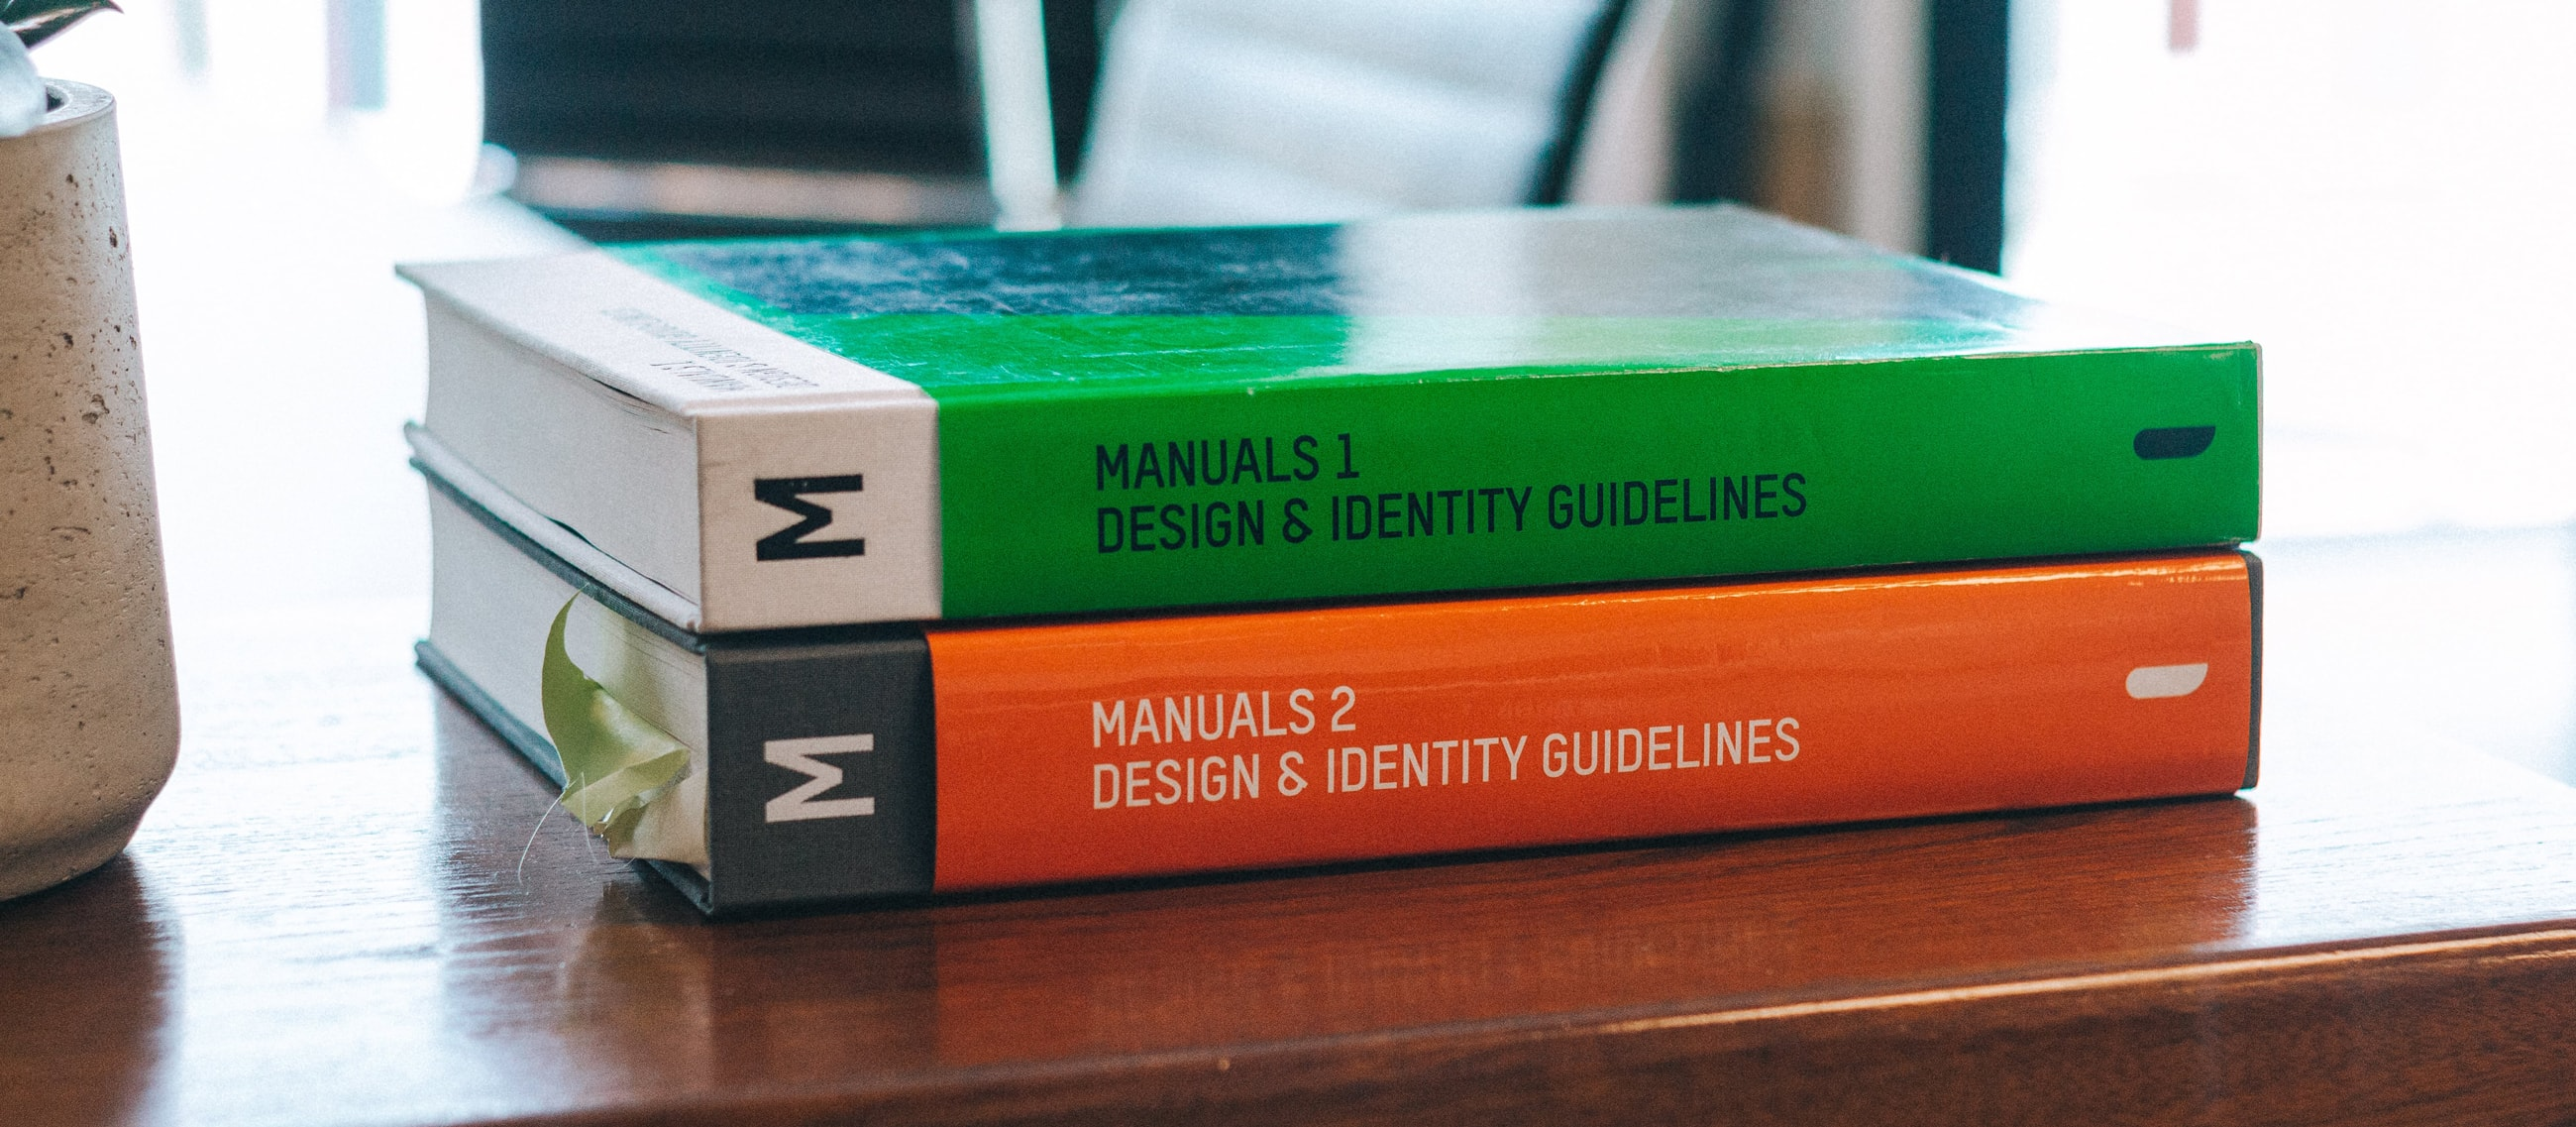 The Manual books by Unit Editions